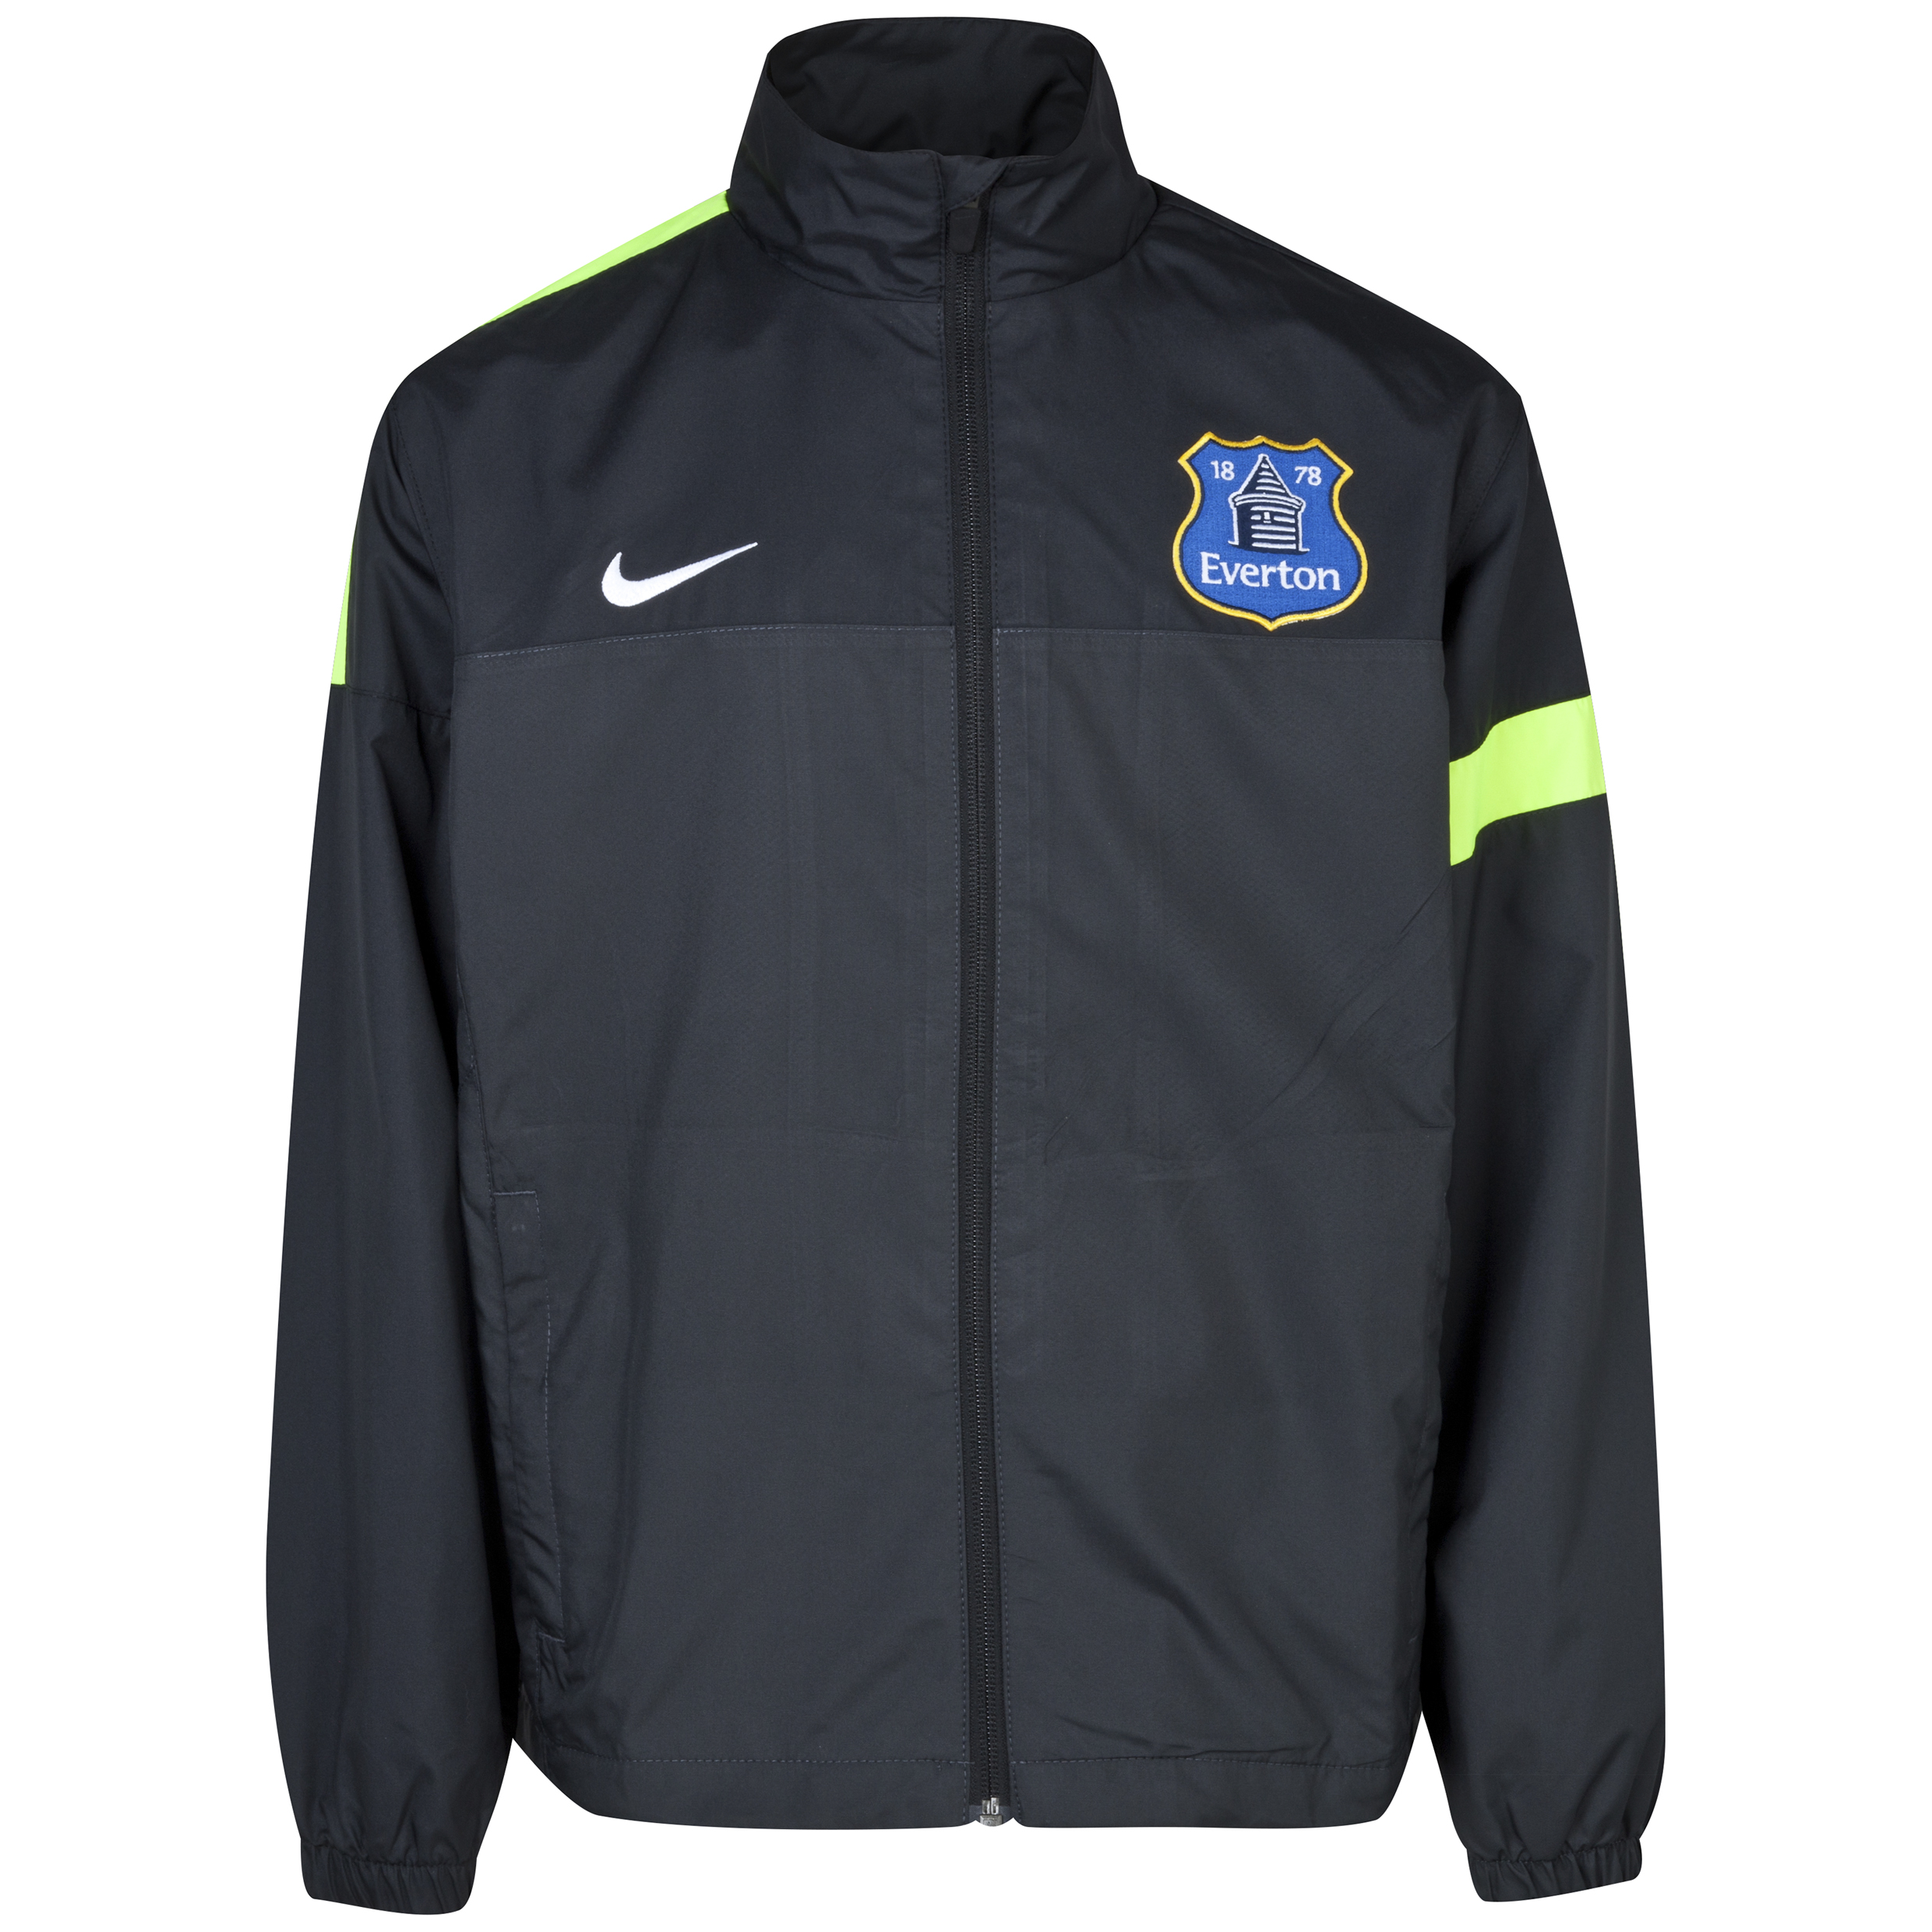 Everton Sideline Track Jacket - Junior Grey